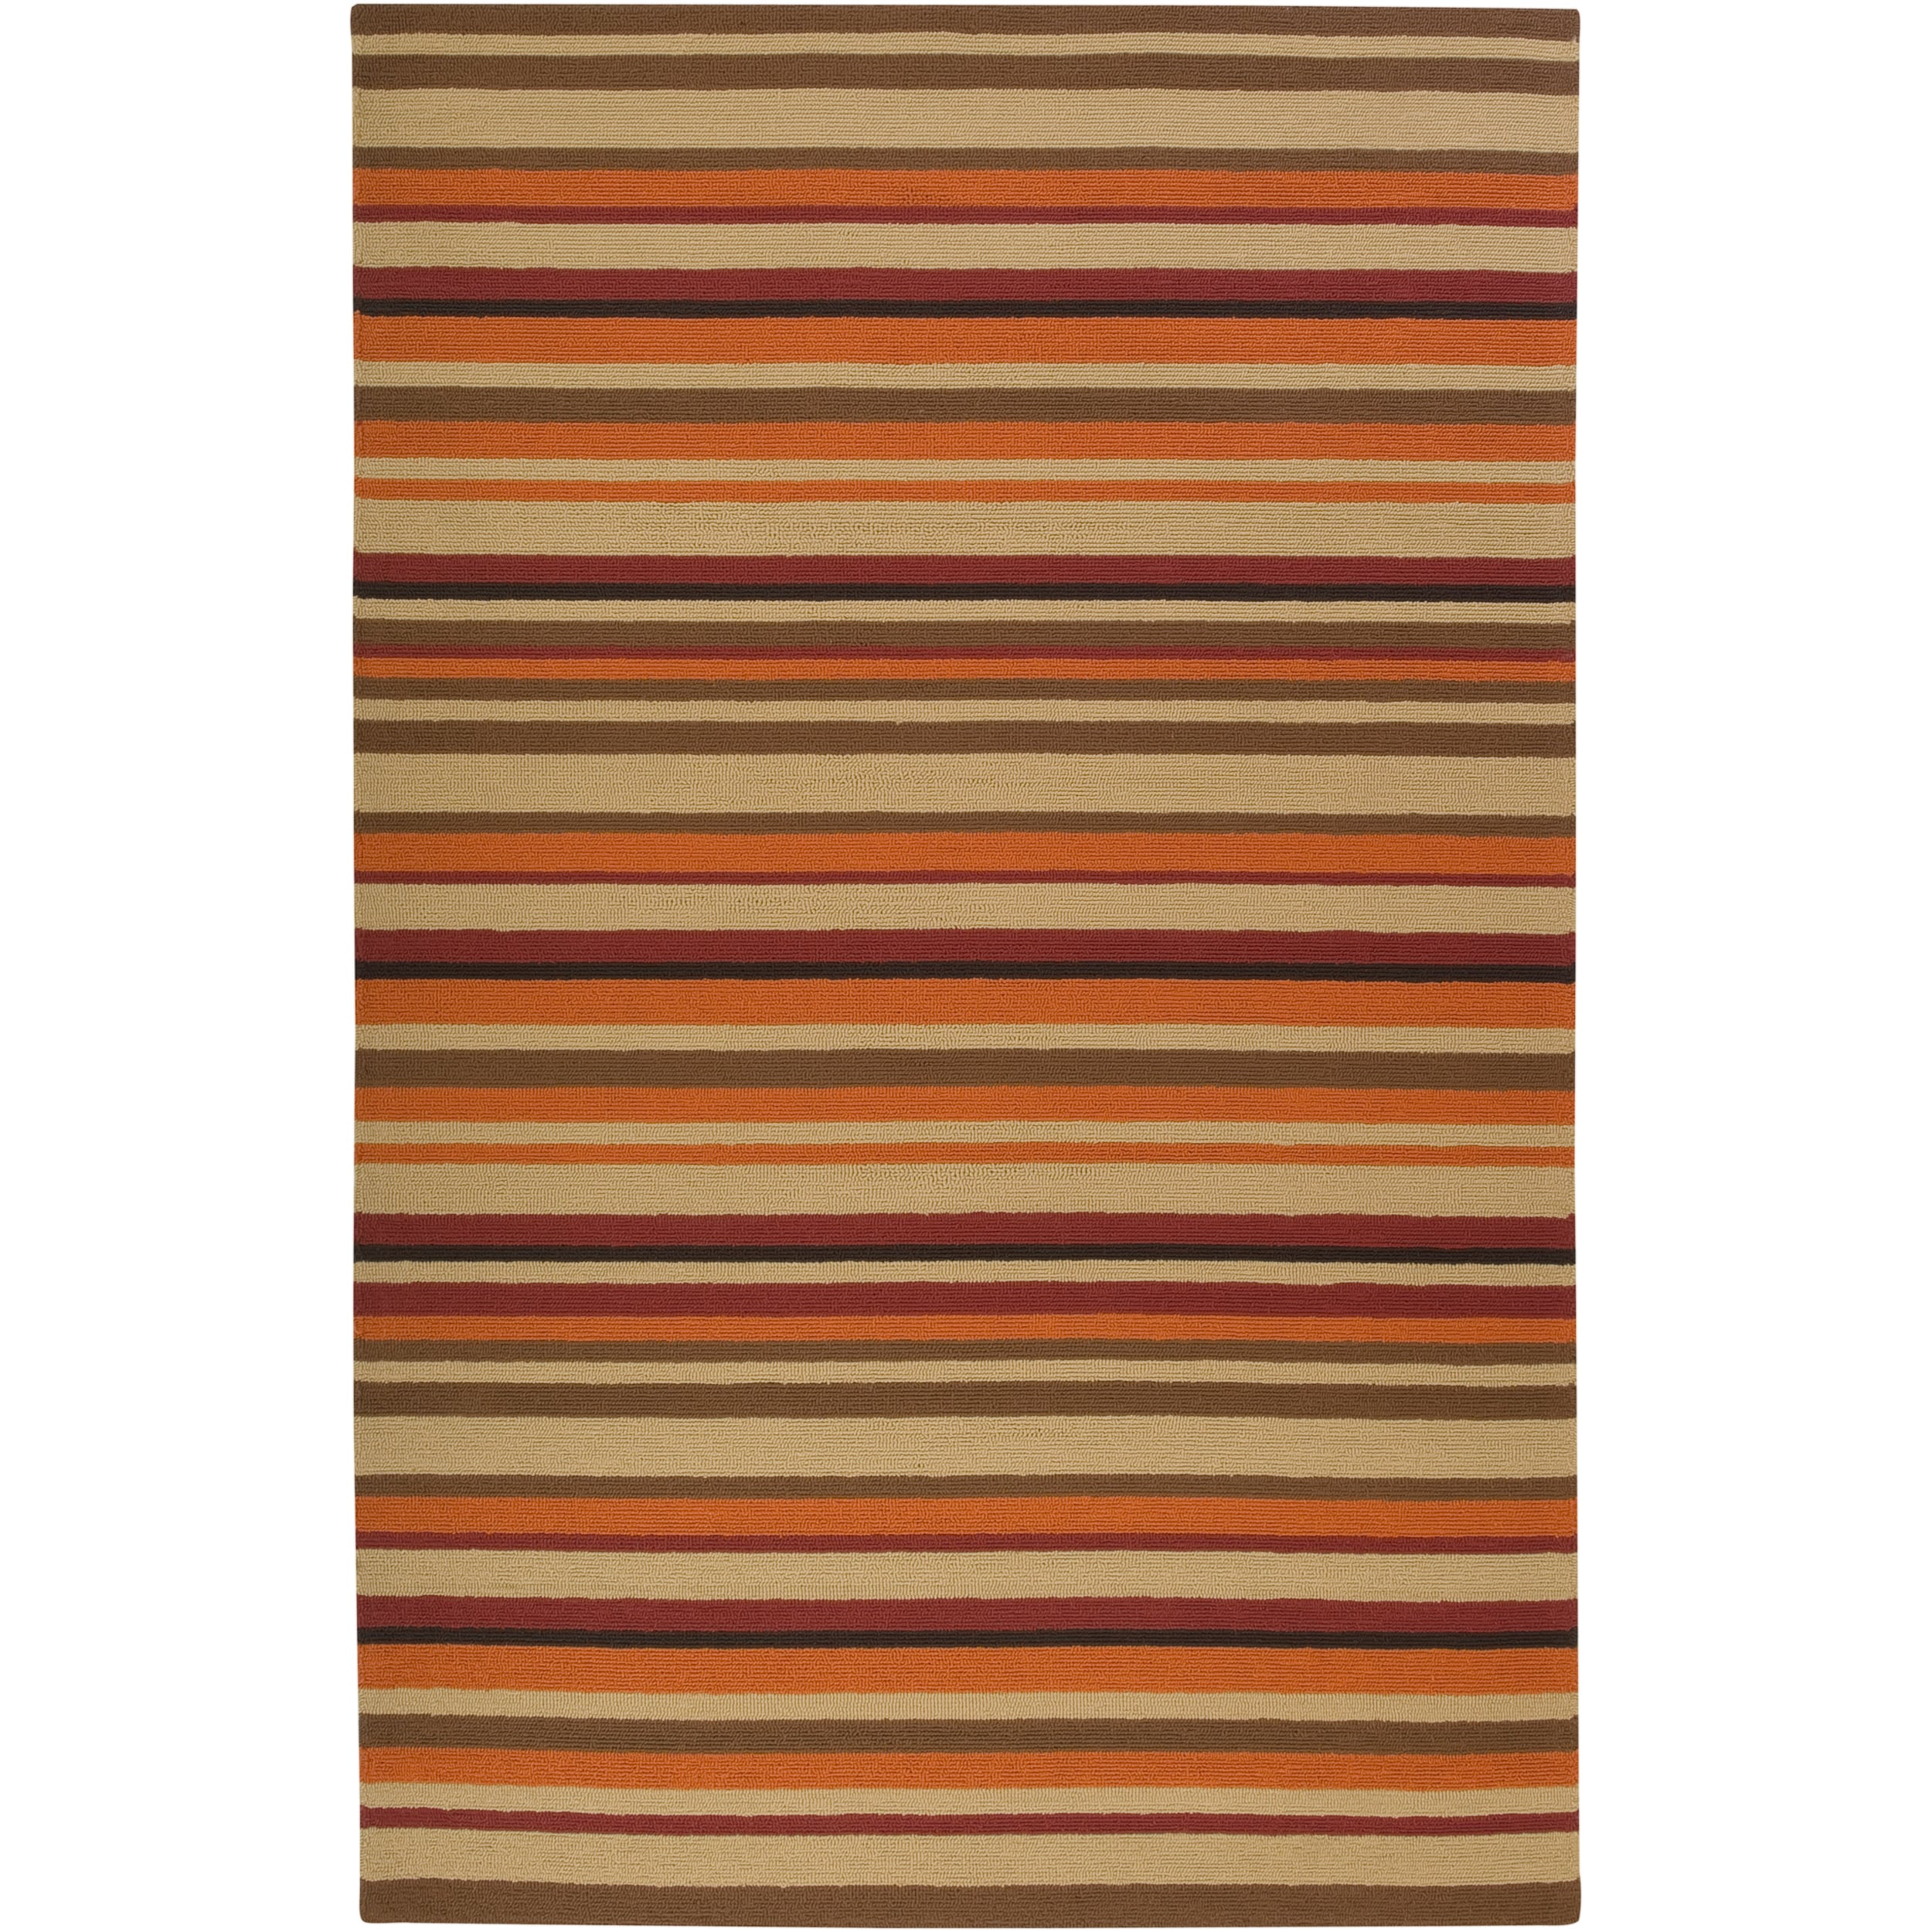 Hand-hooked Multi Colored Striped Davis Rug (9' x 12')